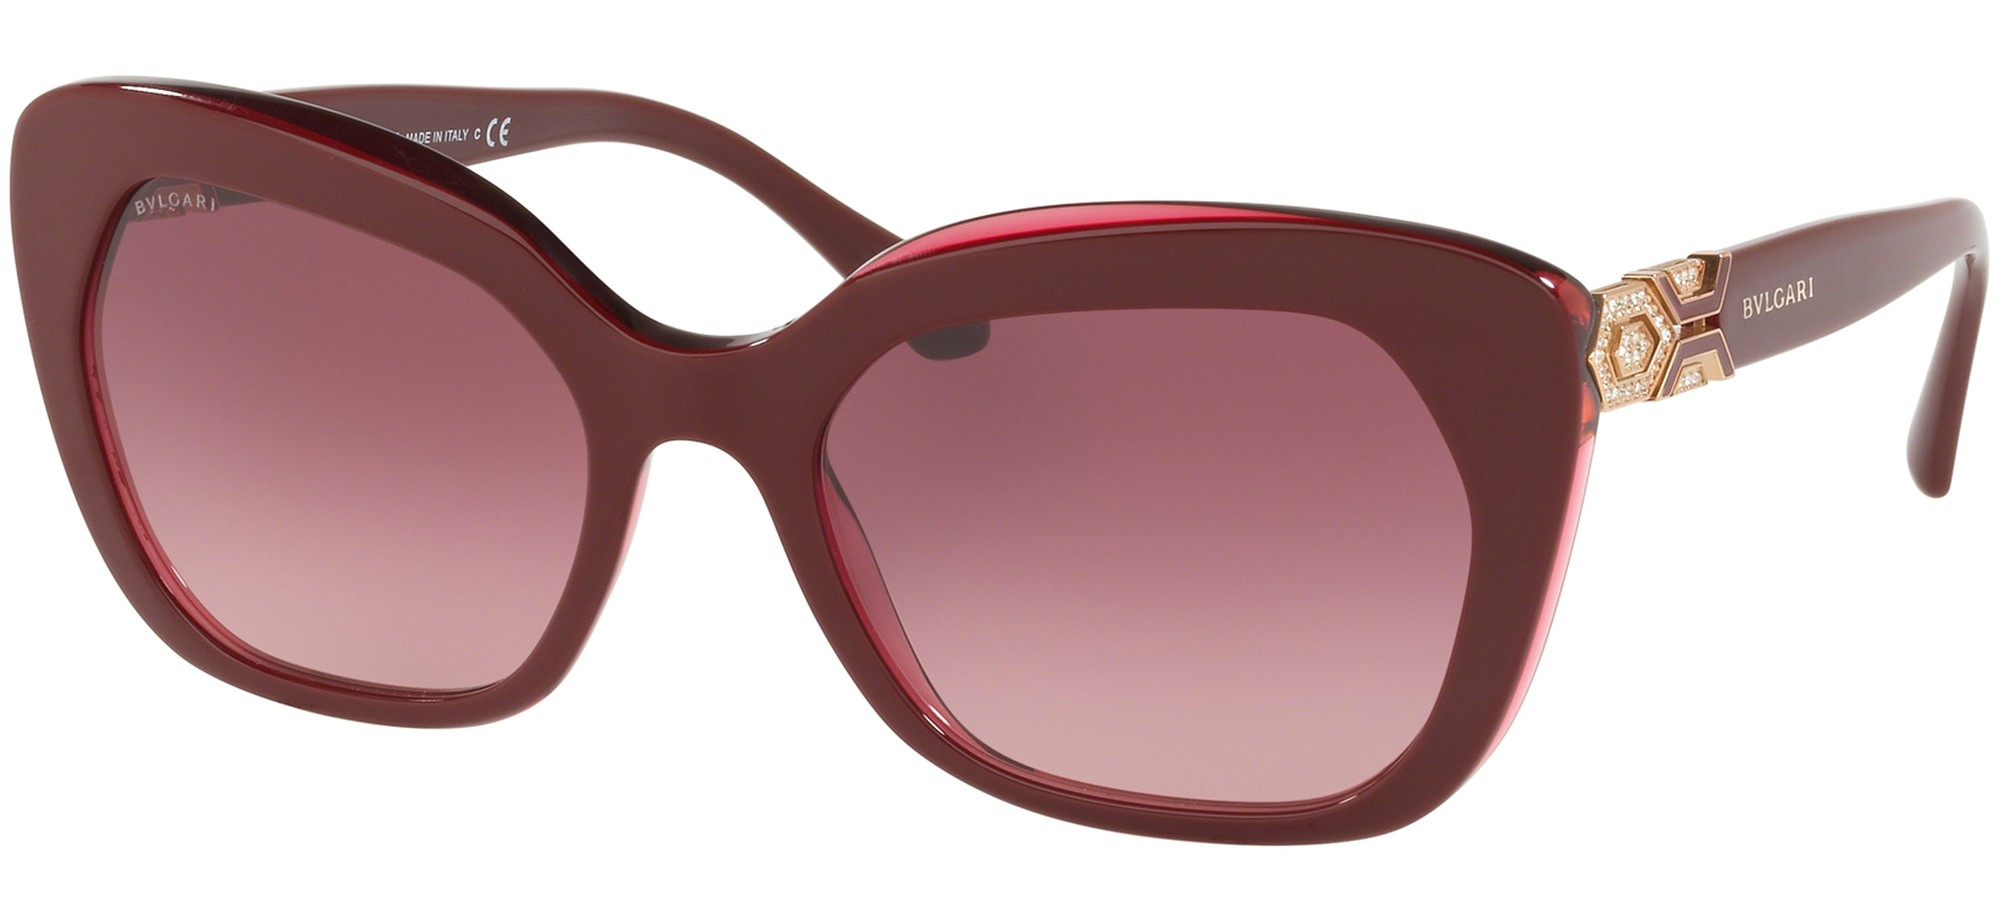 Bvlgari sunglasses DIVAS' DREAM BV 8213B